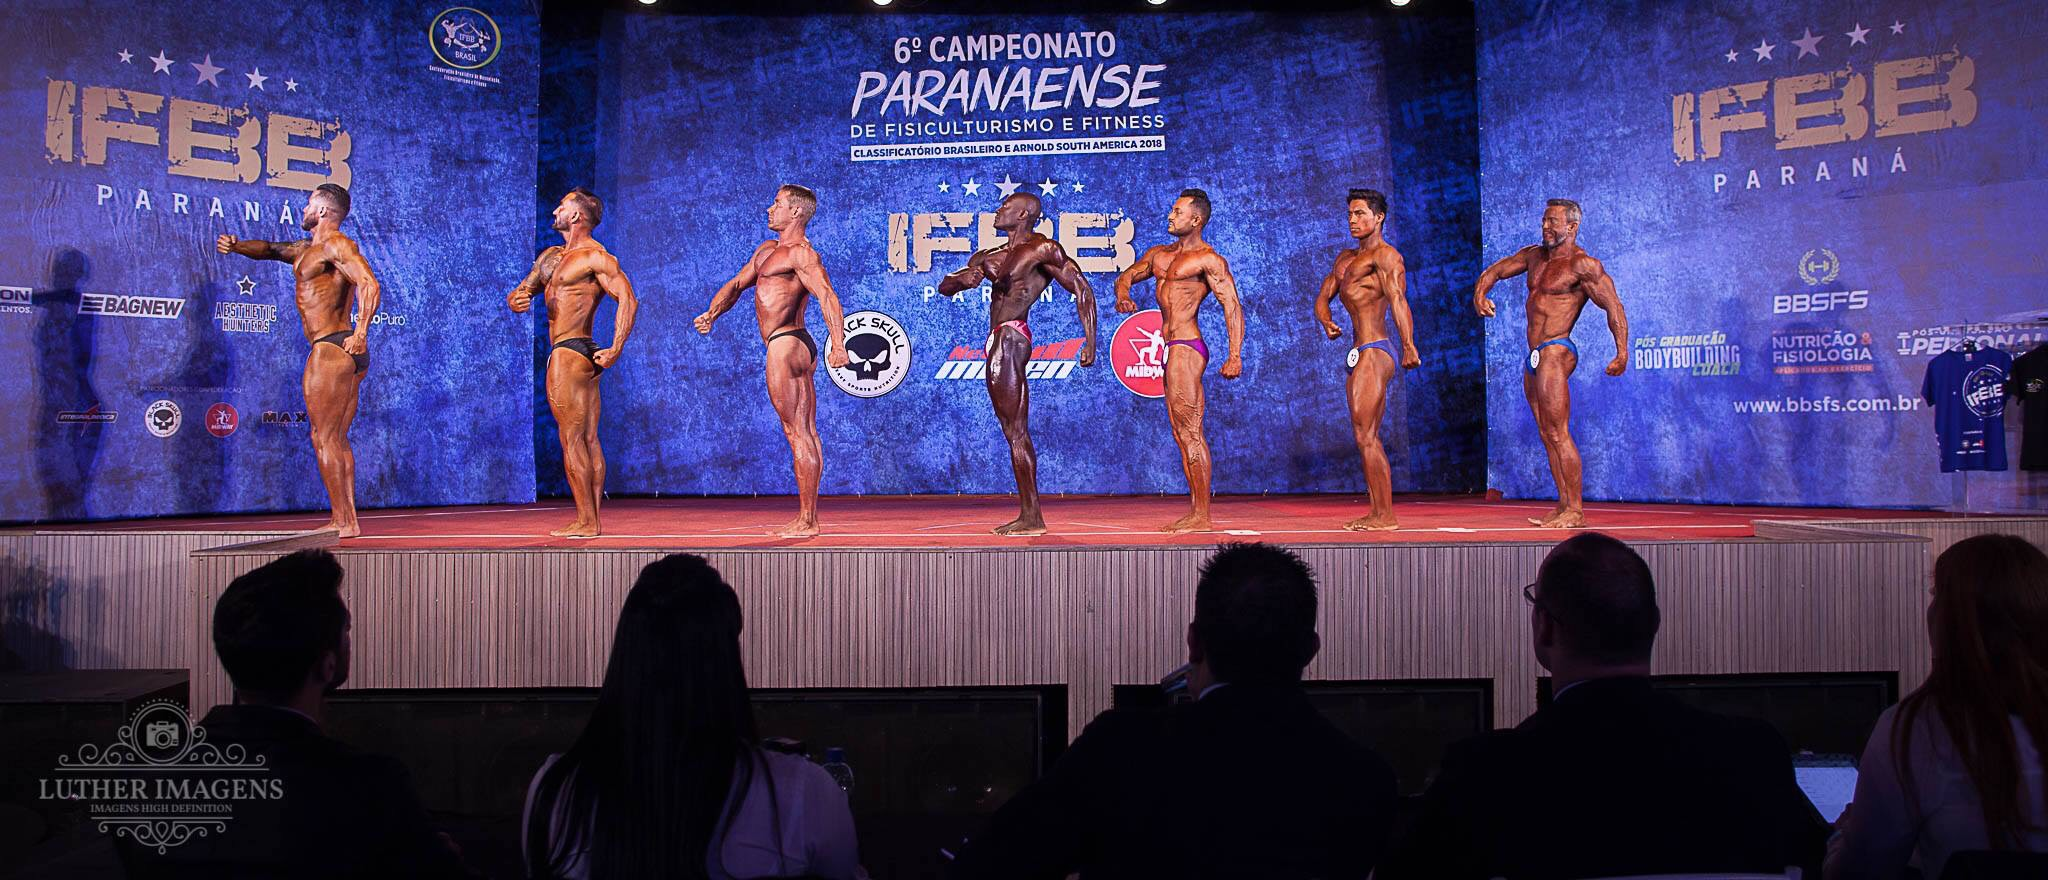 Female athletes at IFBB Paraná Brasil sponsored by midway labs